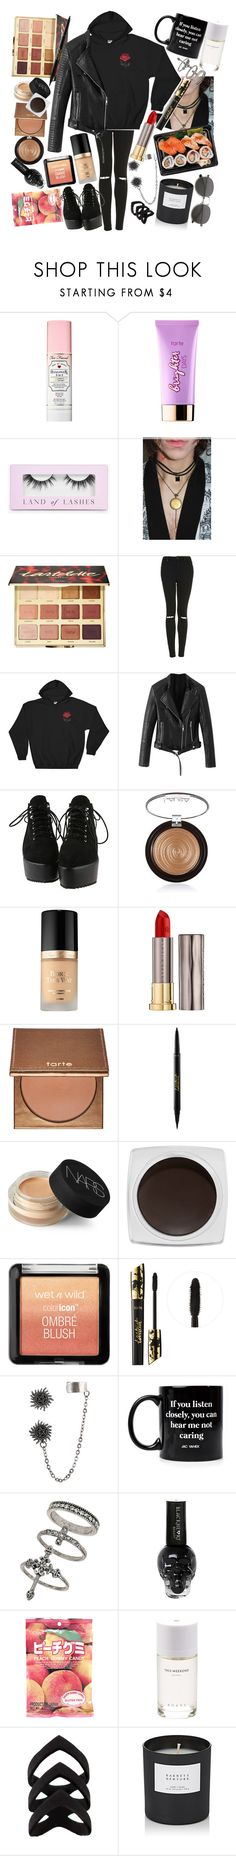 """""""I fell asleep last Winter, woke up and it was August. Not much has changed, yeah, I still feel the same but I'm slowly making progress."""" by thelyricsmatter ❤ liked on Polyvore featuring Too Faced Cosmetics, tarte, Boohoo, Topshop, Laura Geller, Urban Decay, NARS Cosmetics, NYX, Hot Topic and Jac Vanek"""